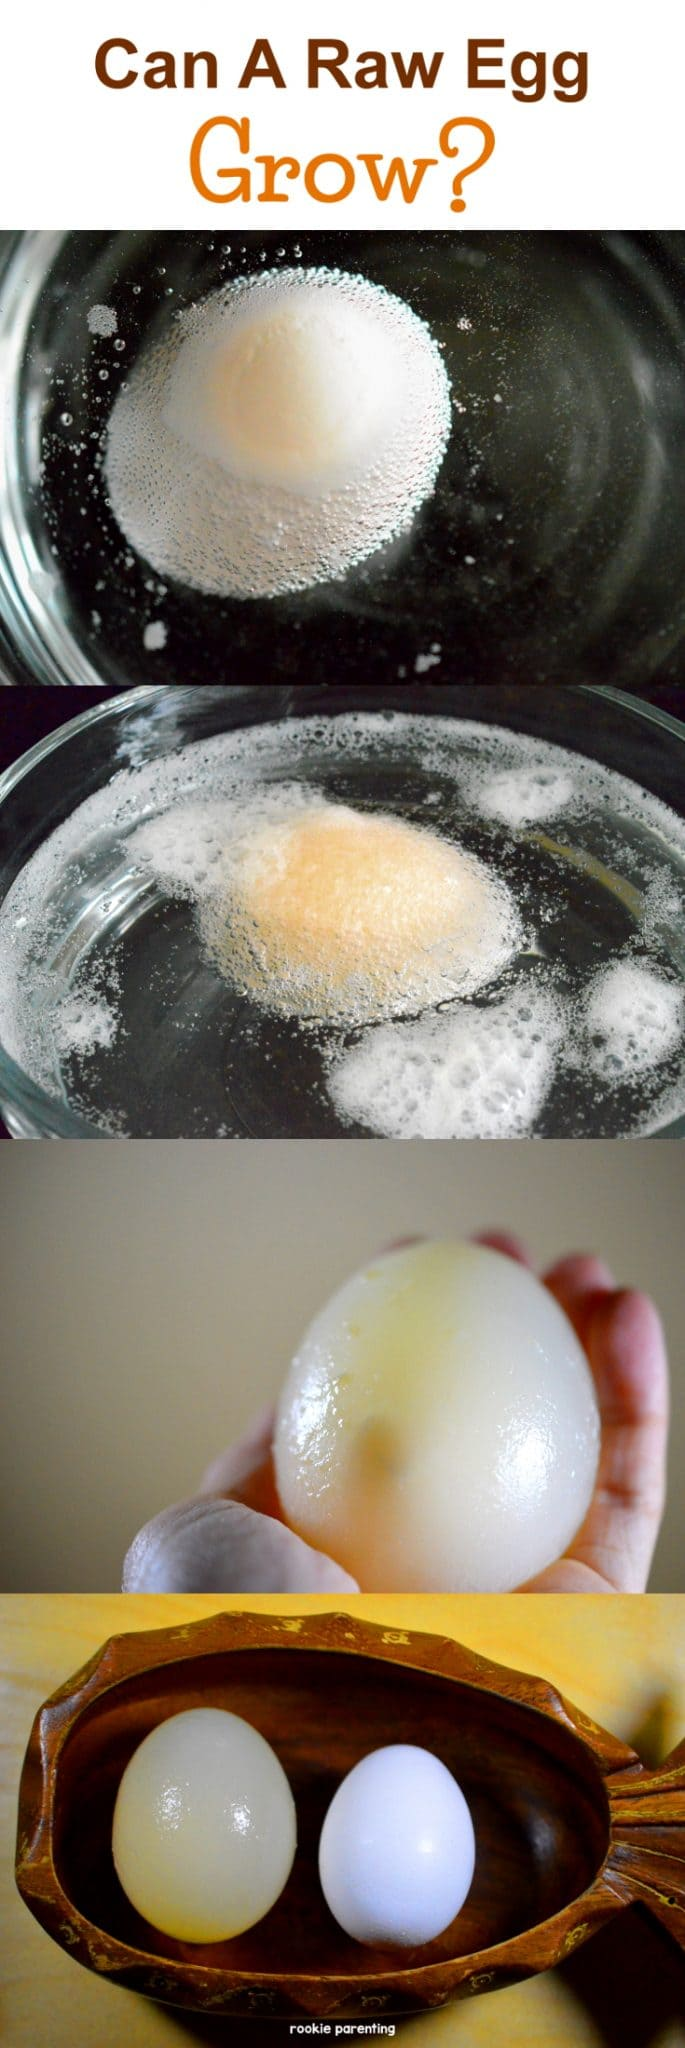 Raw egg growing in 4 different stages. Using vinegar, you can make a raw egg grow bigger, hold it in your bare hand and bounce it up and down. It's amazing!